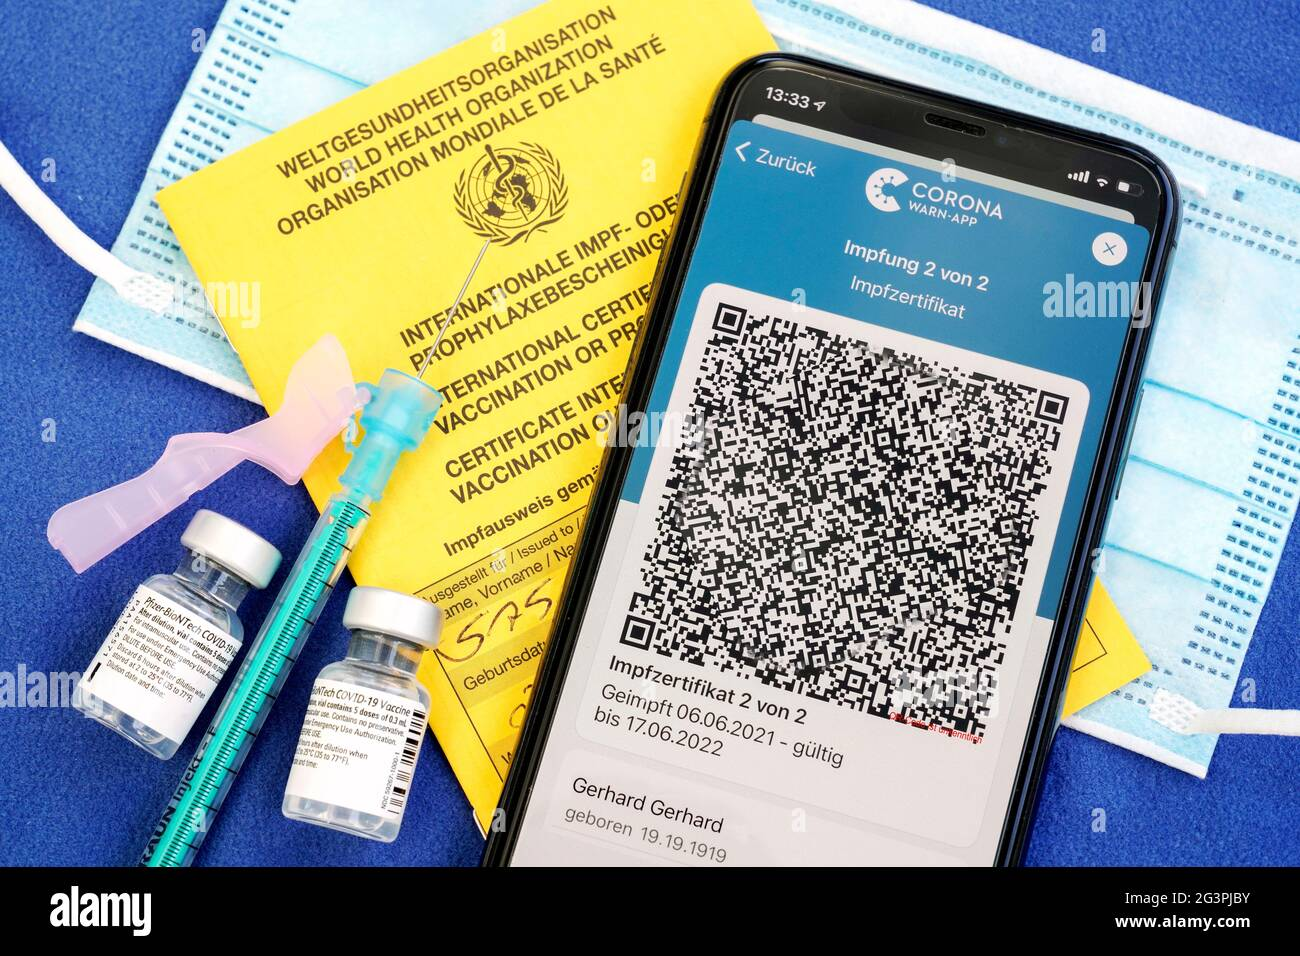 Qr High Resolution Stock Photography And Images Page 6 Alamy